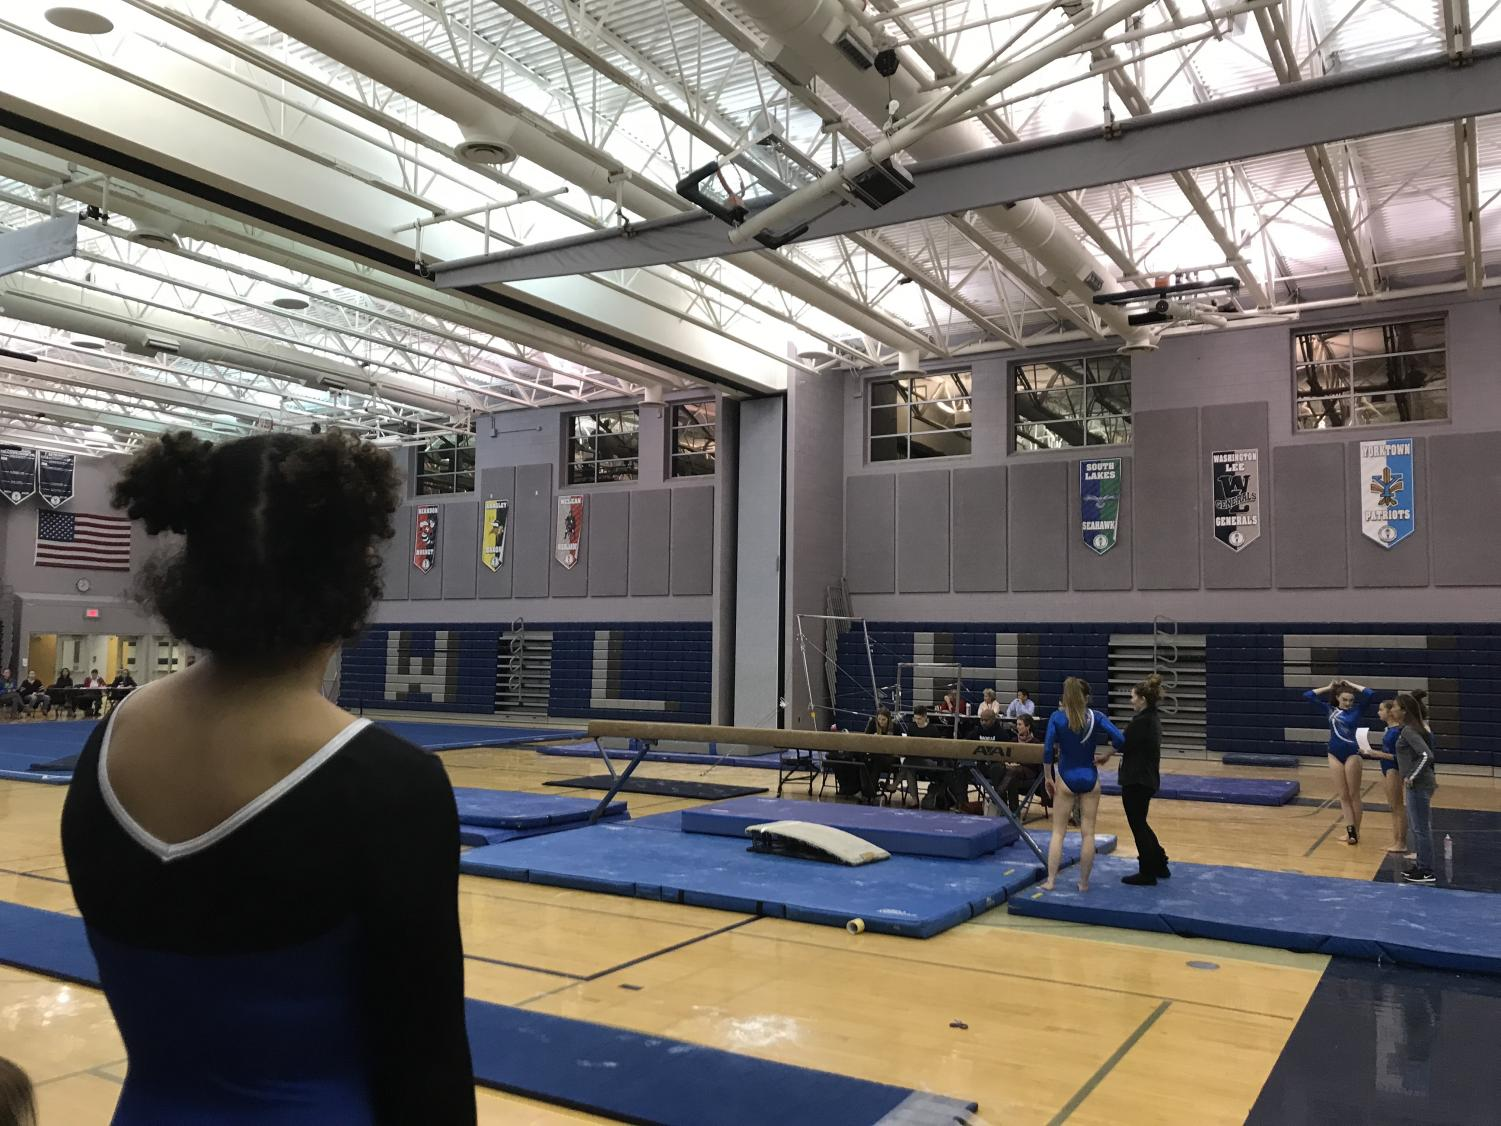 Freshmen Sophia Bailey looks over the gymnastics events being held at the school, waiting for her turn on vault. This is the schools first home meet of the season against four other competing schools.